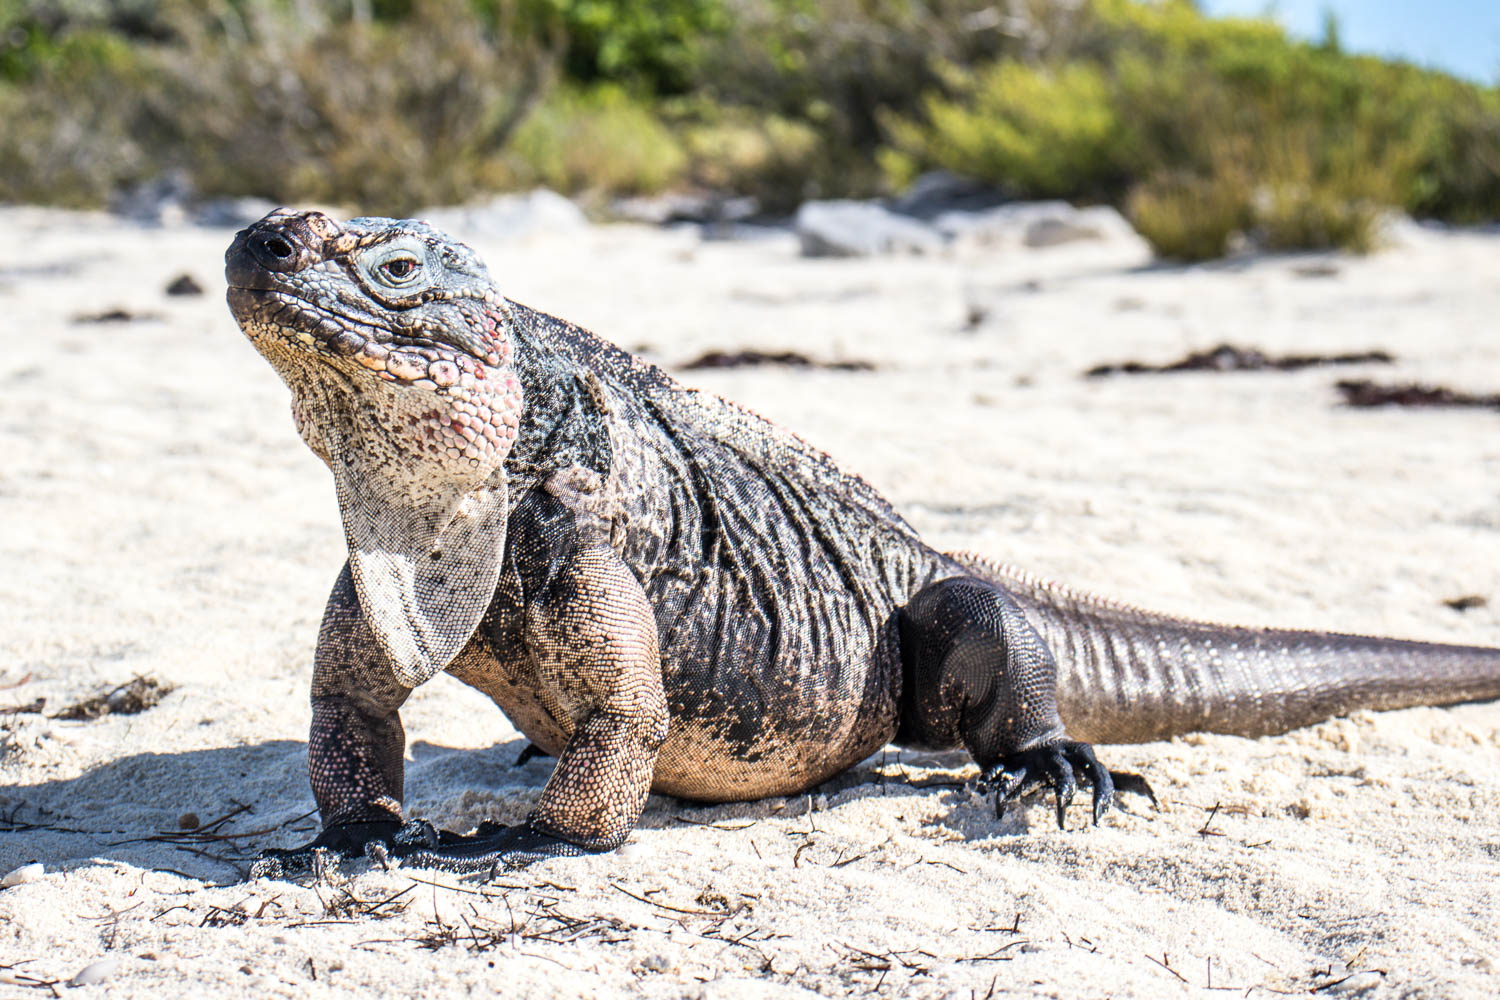 The Bahamian Rock Iguanas are an endangered species. You can see them at Bitter Guana Cay on your day trips to Bahamas on a 1 day cruise from Miami. The day trip to Bahamas from Miami goes by the Iguanas.